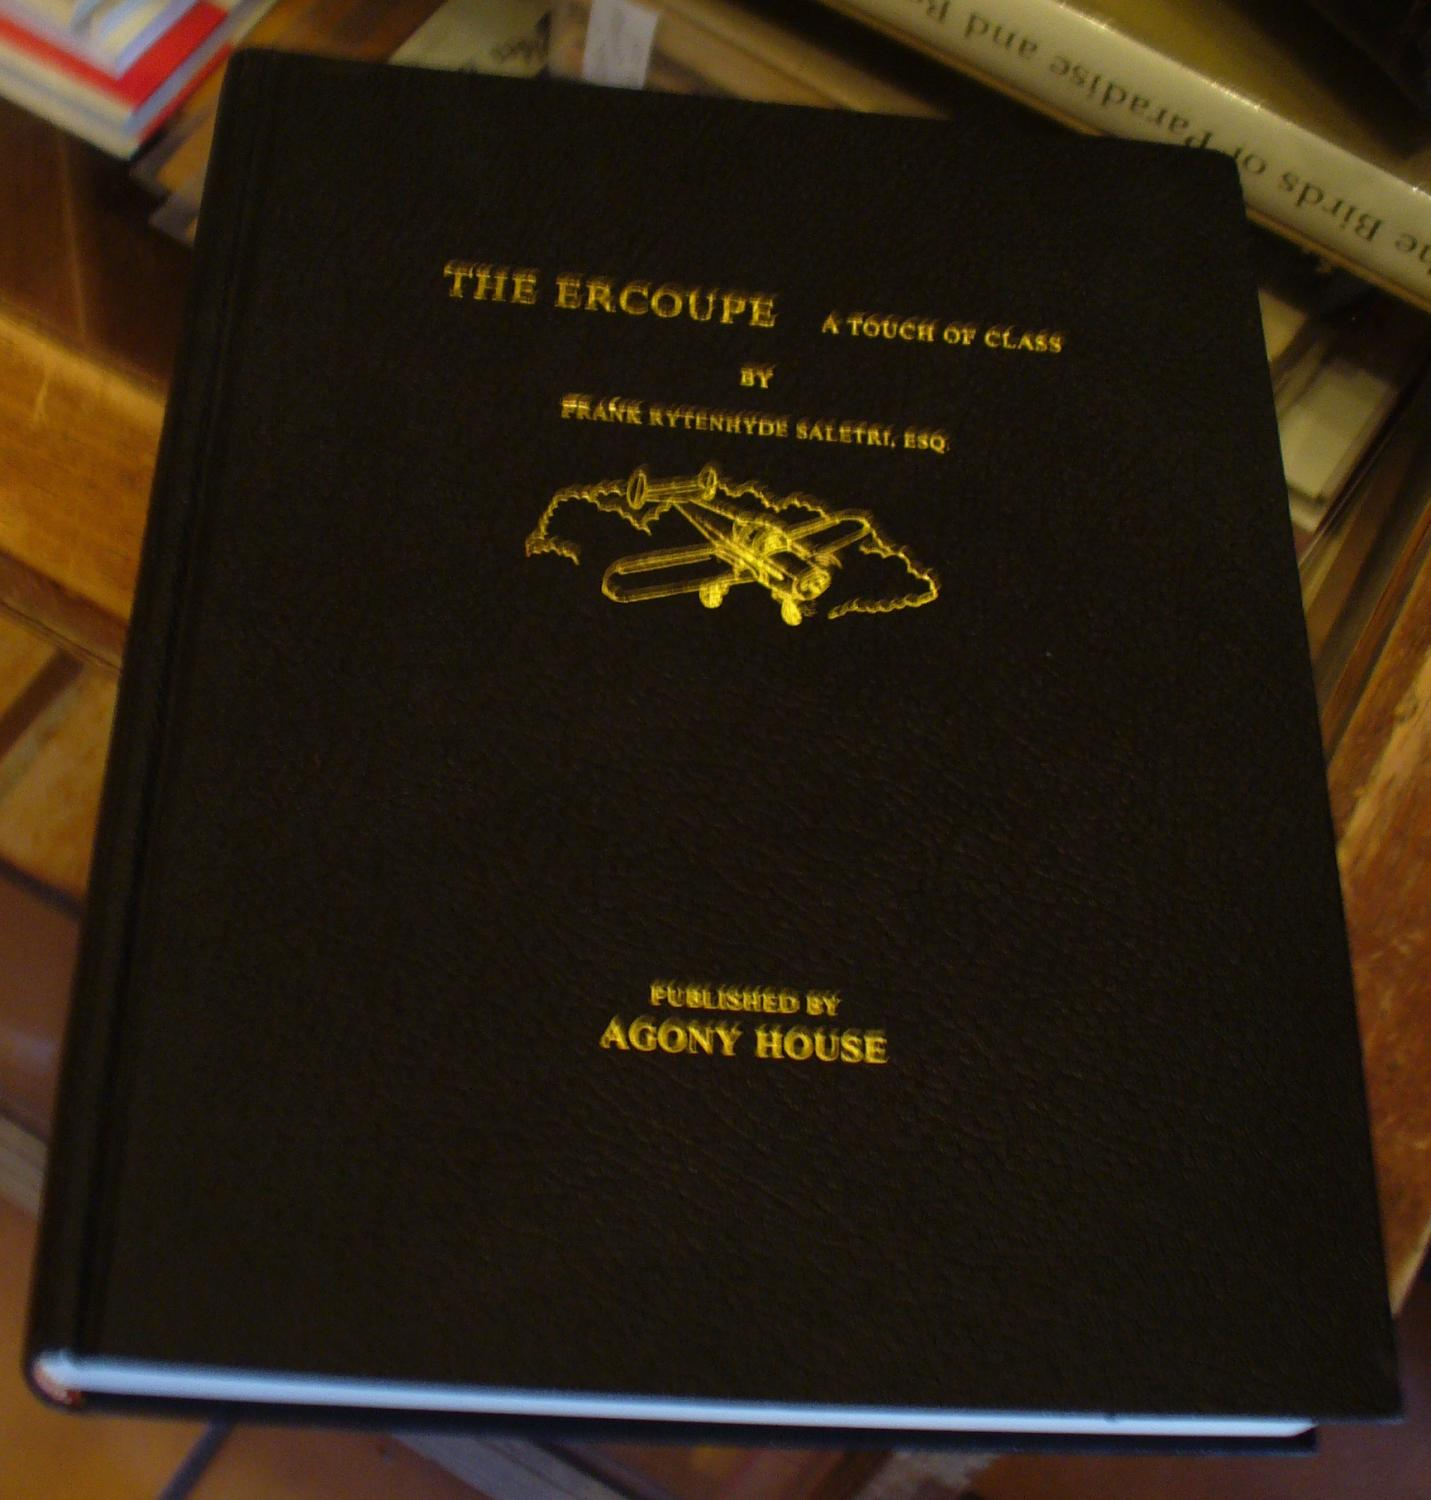 The Ercoupe: A Touch of Class - Volume I: Saletri, Frank Rytenhyde